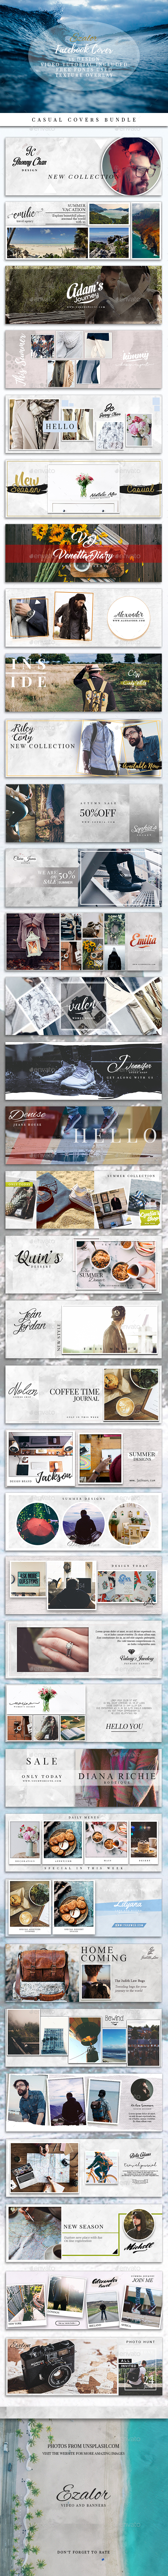 Casual Facebook Covers Bundle - Facebook Timeline Covers Social Media